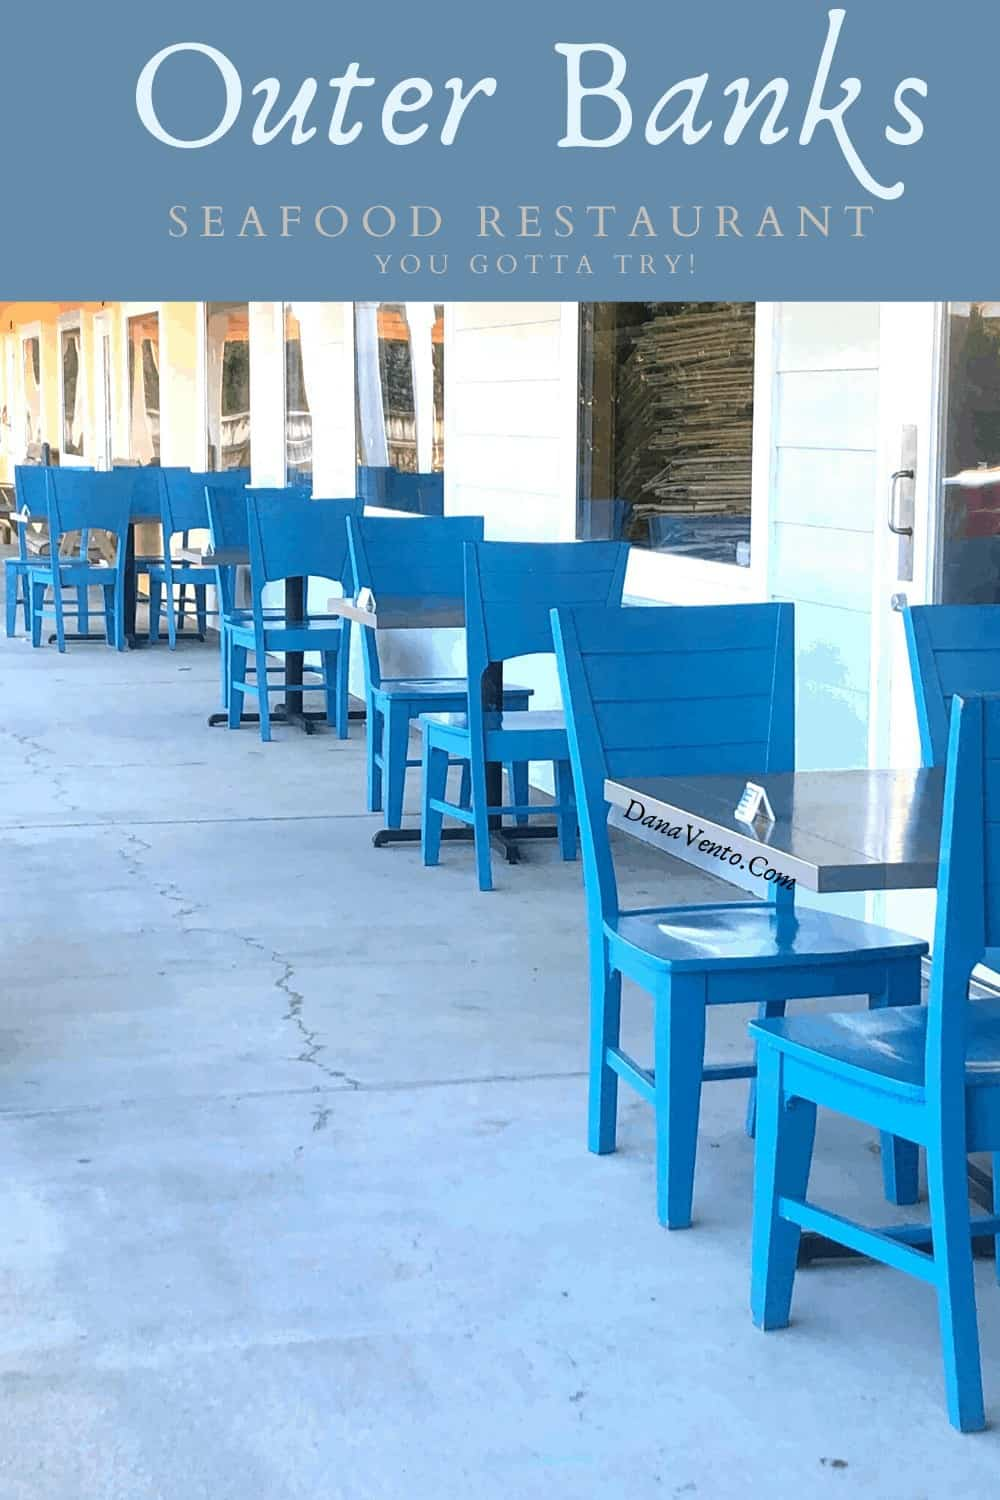 Steamers Restaurant in Outer Banks from Exterior seating